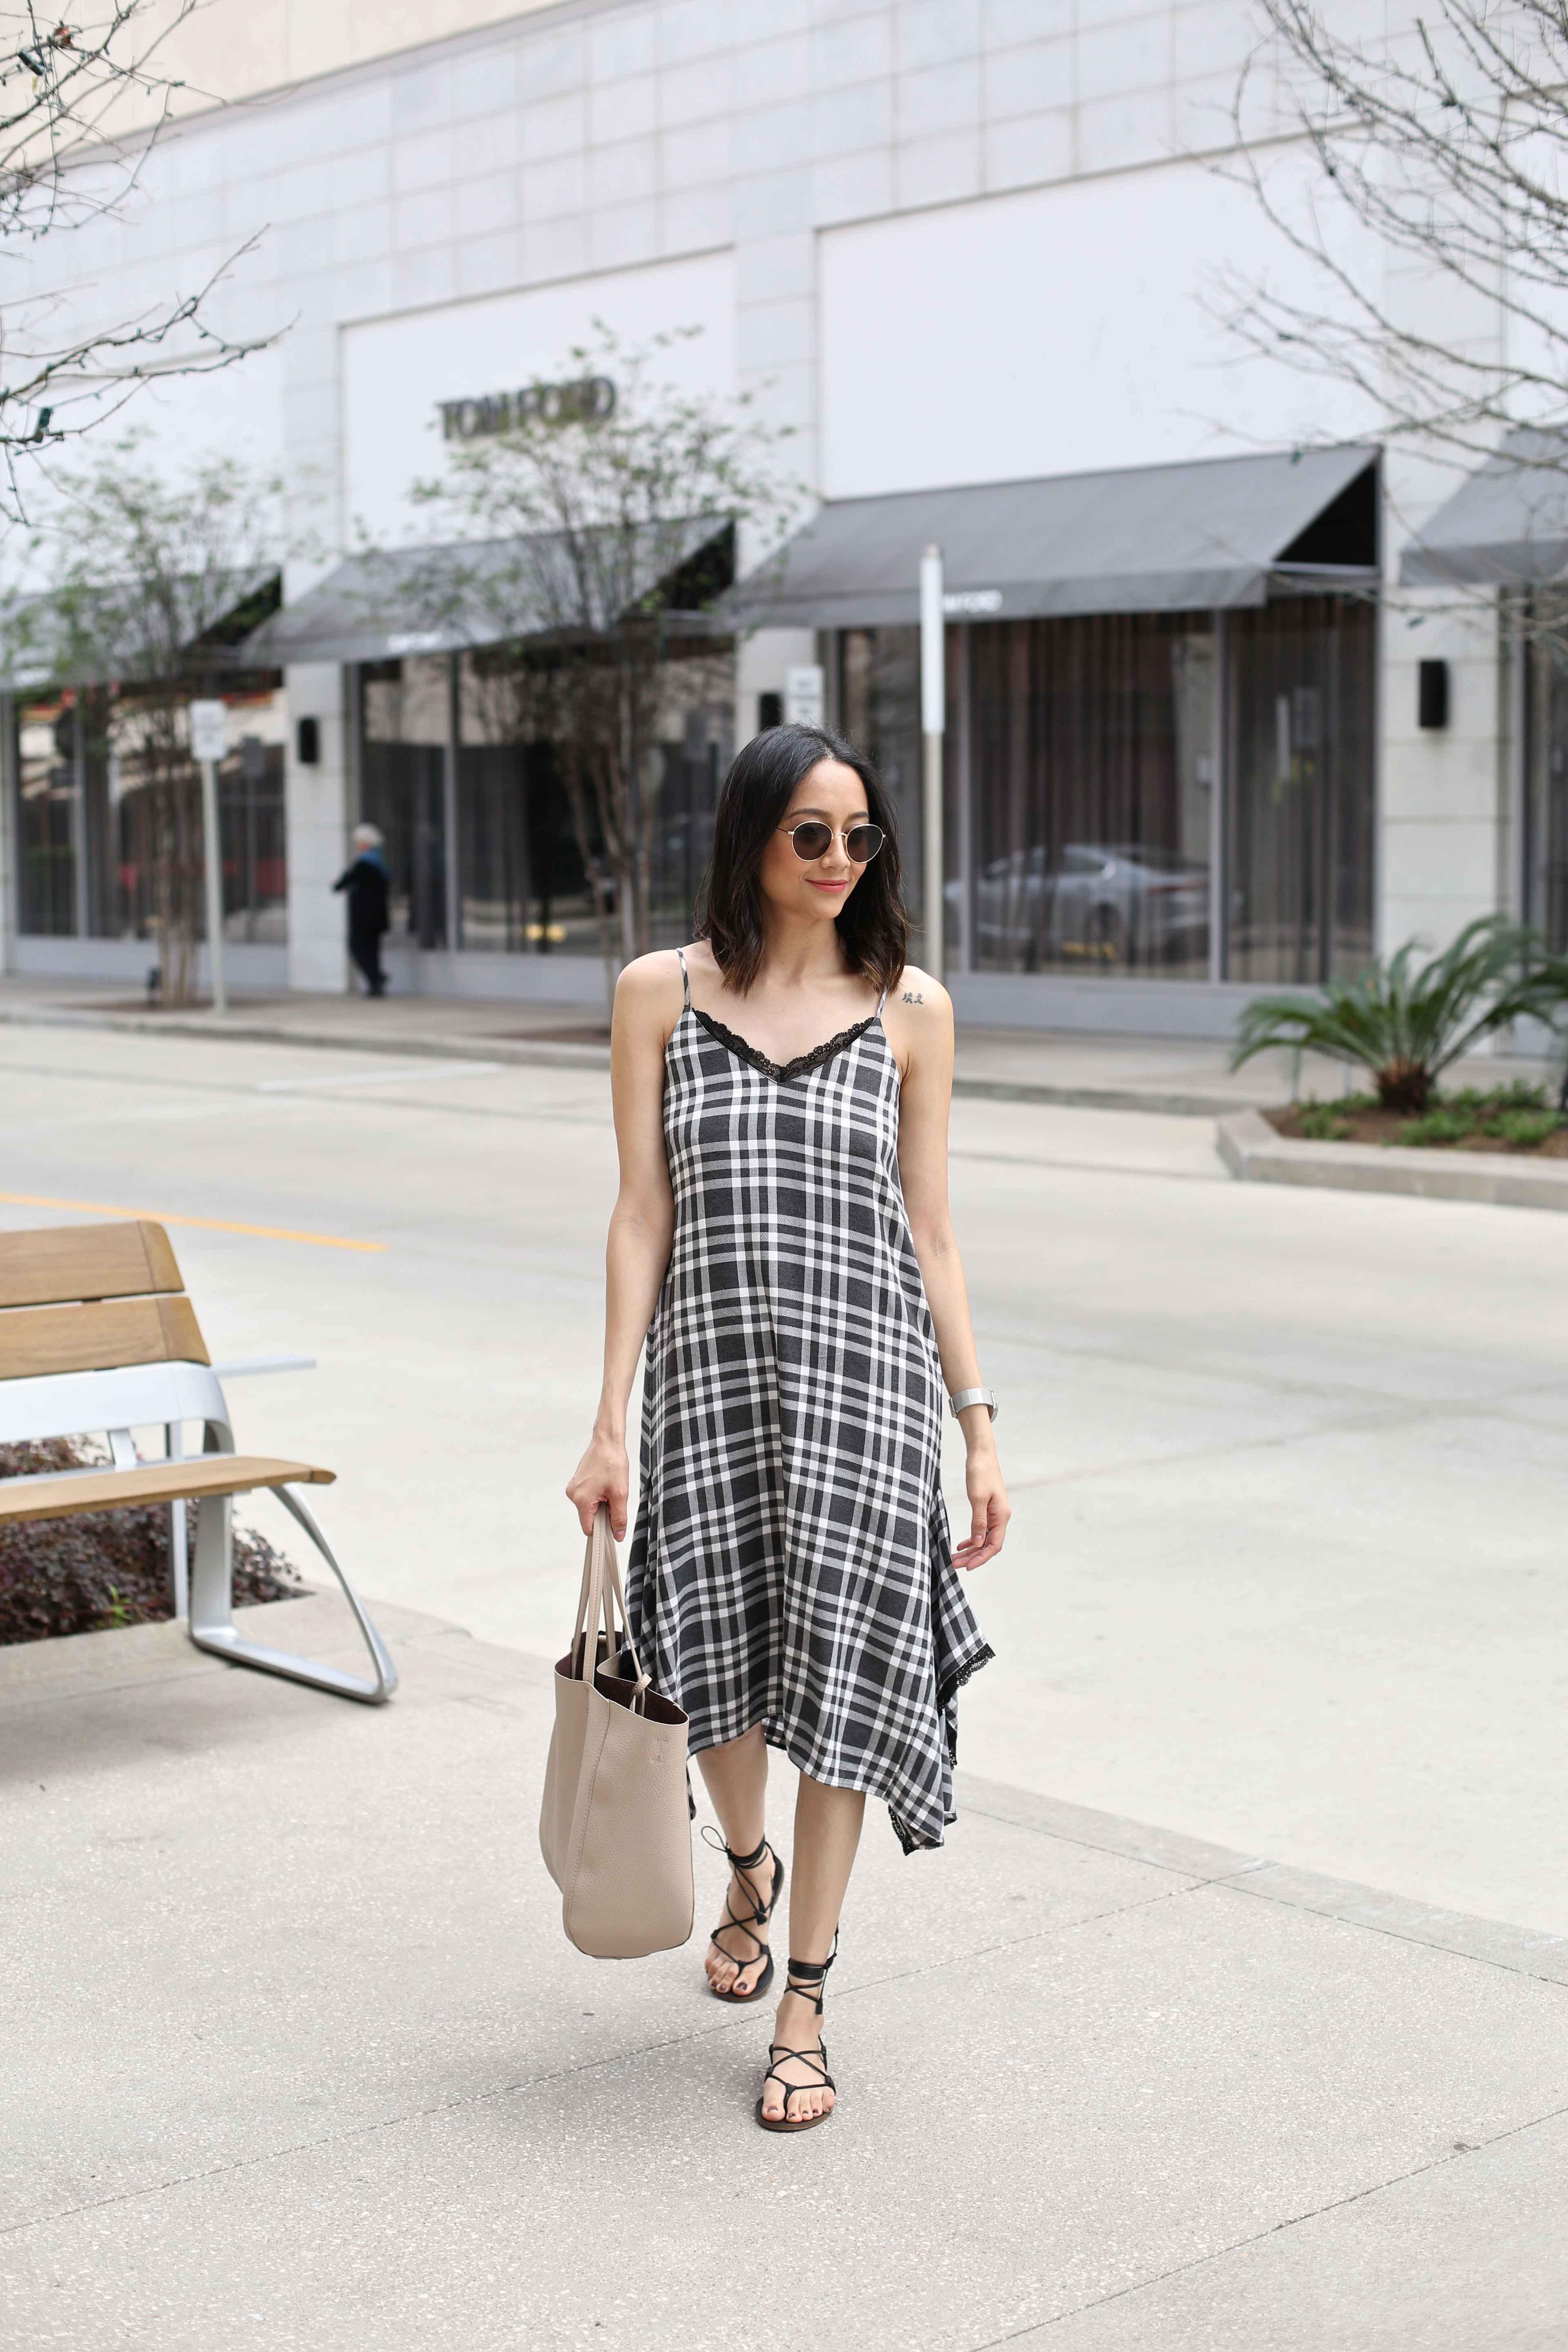 How to wear a plaid dress for summer